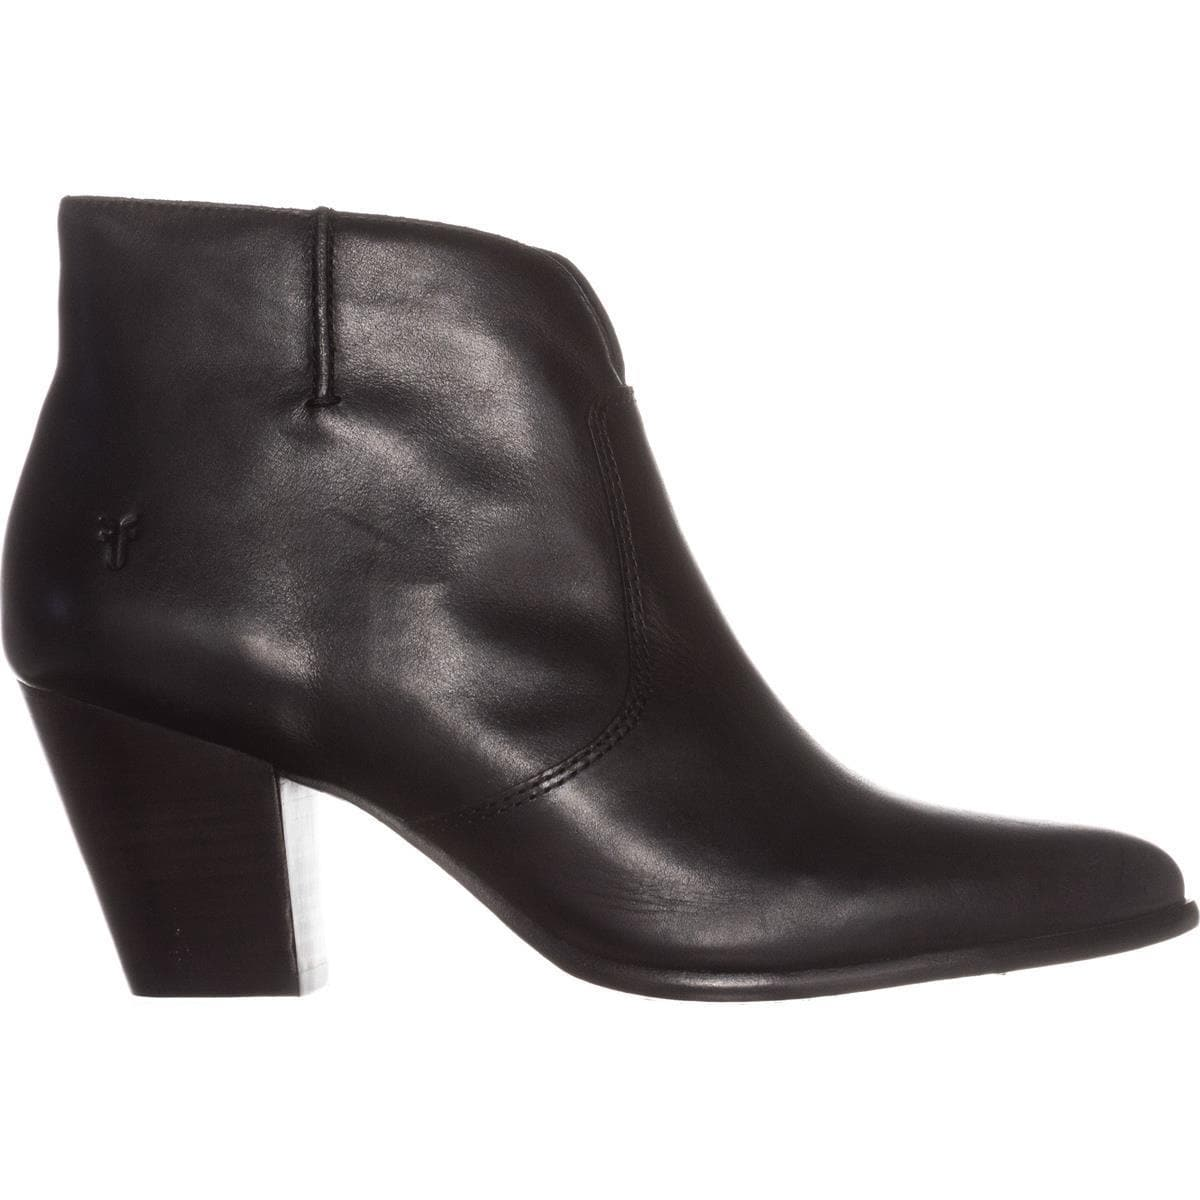 Frye-Womens-Jennifer-Bootie-Leather-Pointed-Toe-Ankle-Fashion-Black-Size-7-0-q thumbnail 2